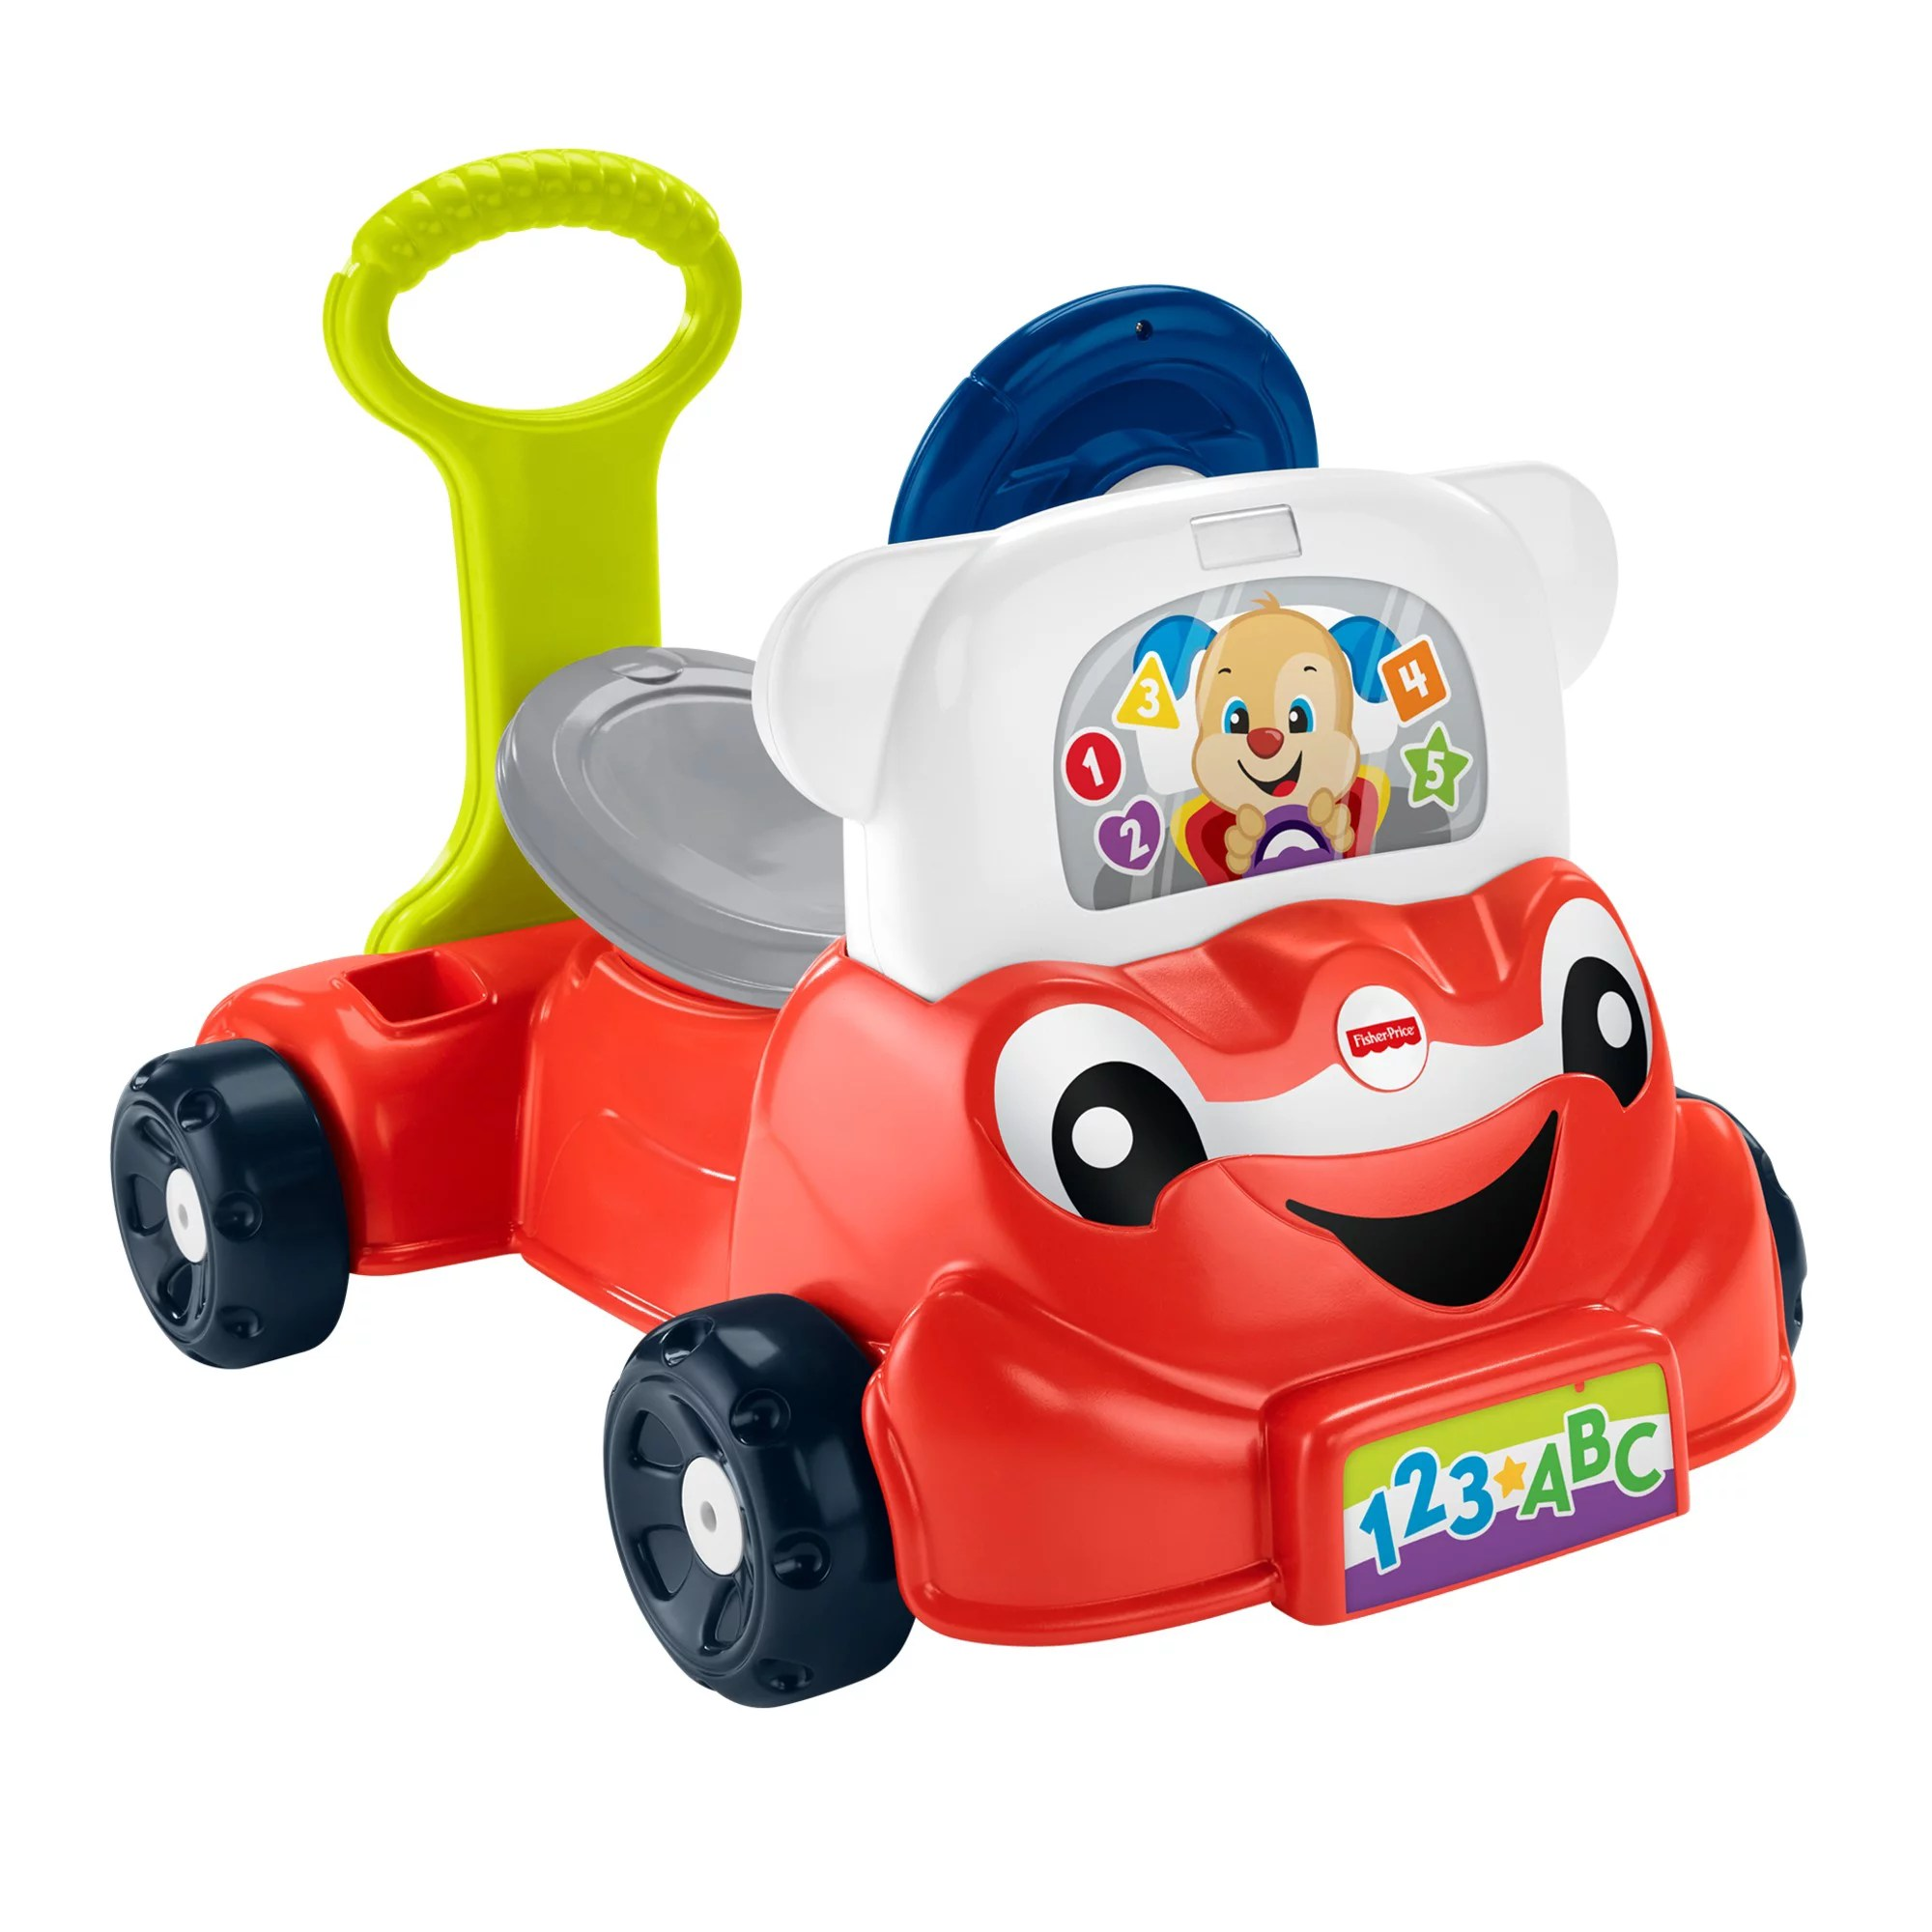 Toddler Car Dashboard Fisher Price Laugh Learn 3 In 1 Interactive Smart Car Walmart